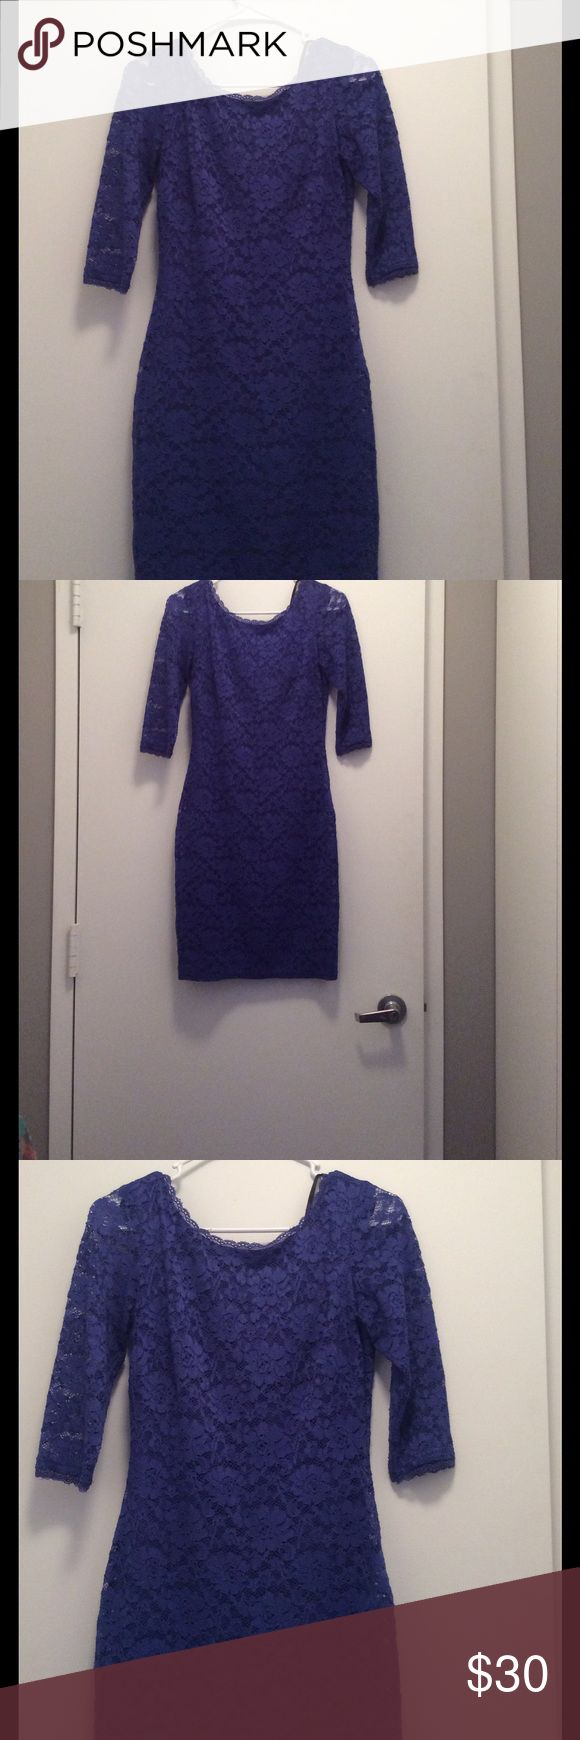 Lace laundry dress purple size 0 used Forever 21 high low blouse floral size M used.  Brand from Nordstrom laundry Dresses